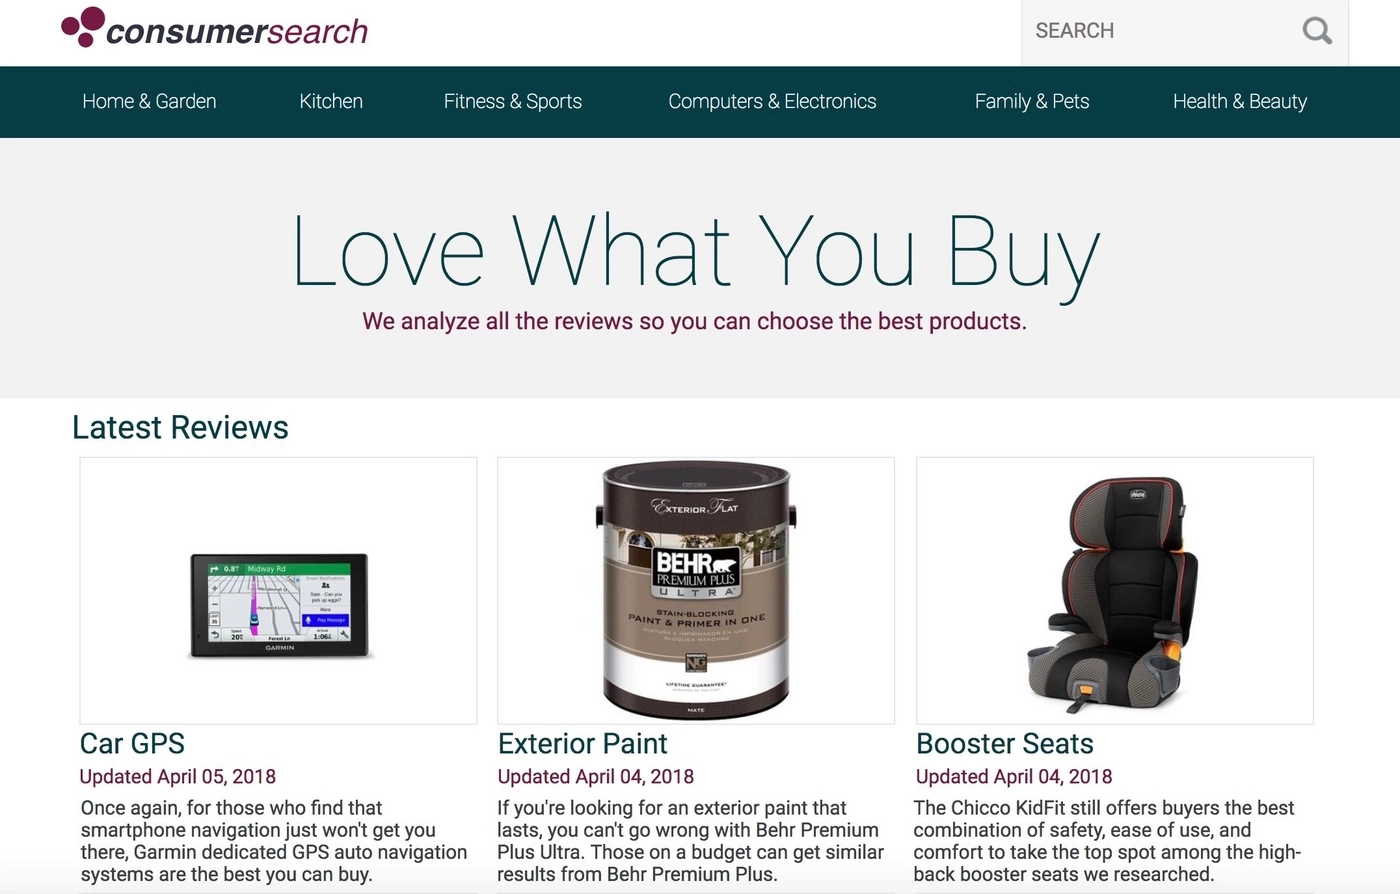 Amazon affiliate marketing example on ConsumerSearch